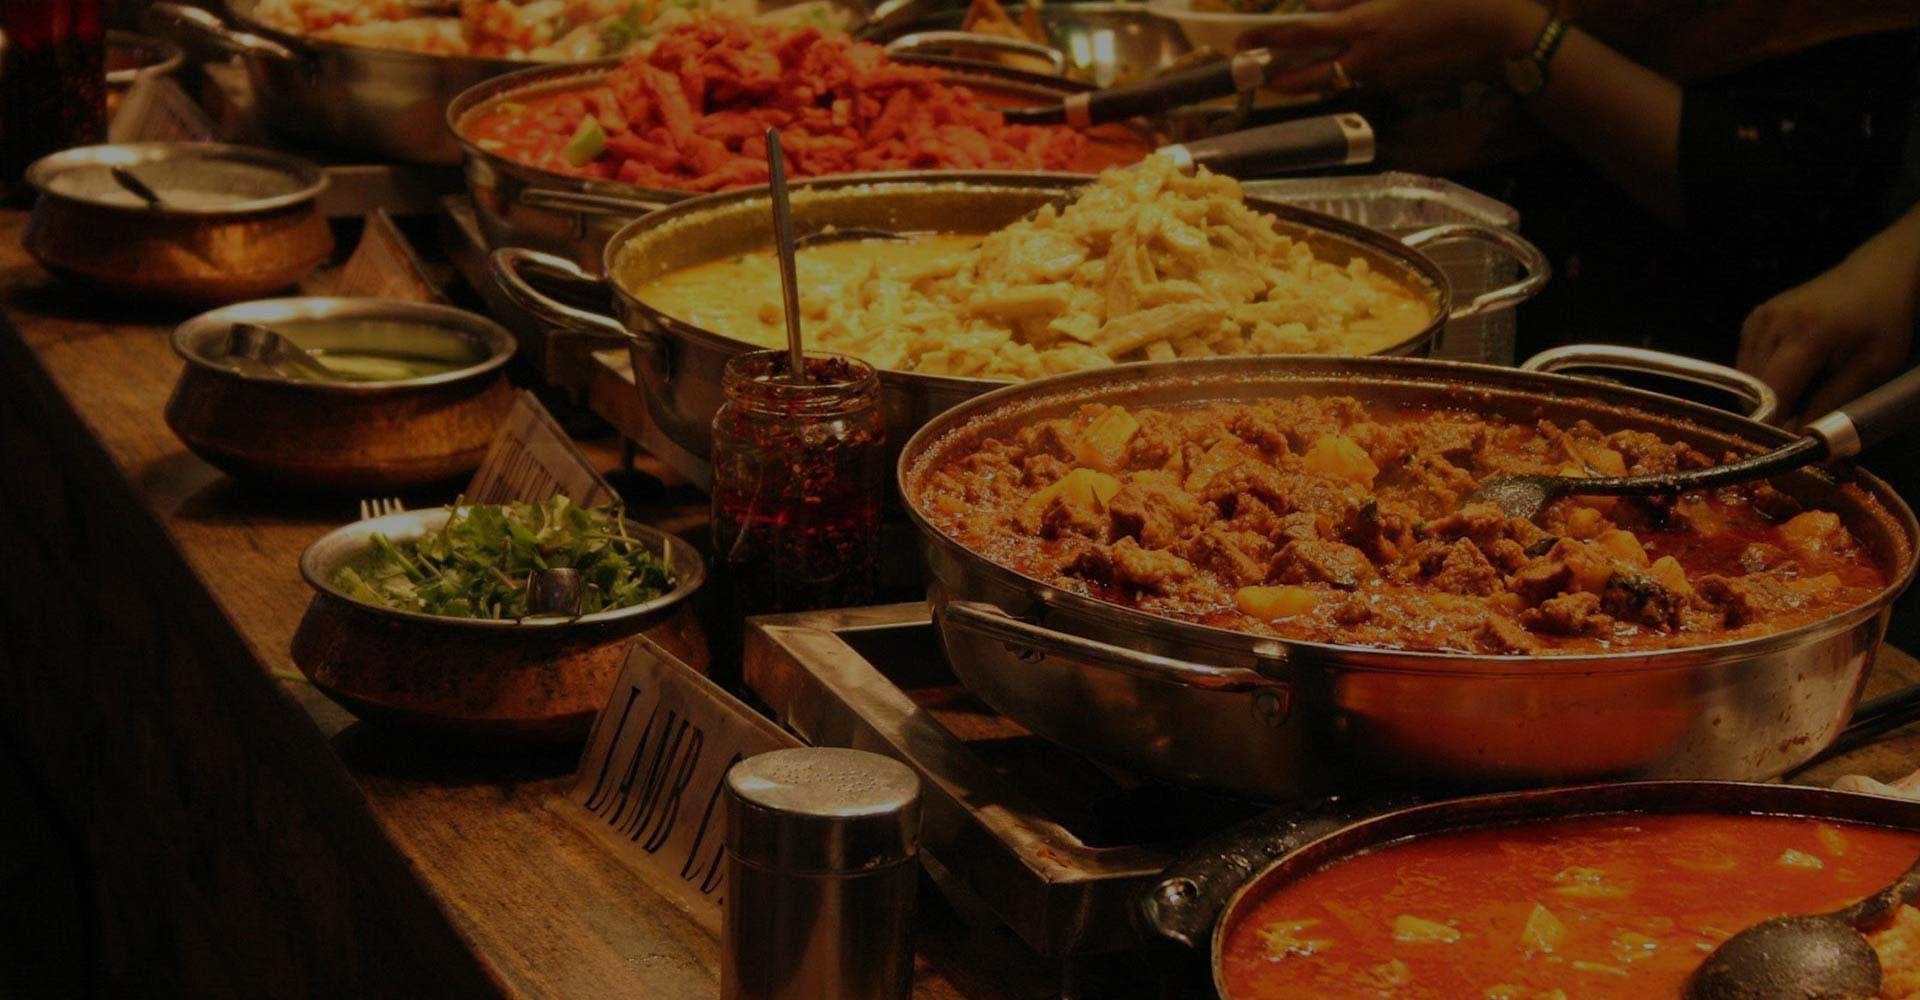 Magnificent Corporate Dhaba Corporate Tiffin And Catering Service In Download Free Architecture Designs Rallybritishbridgeorg